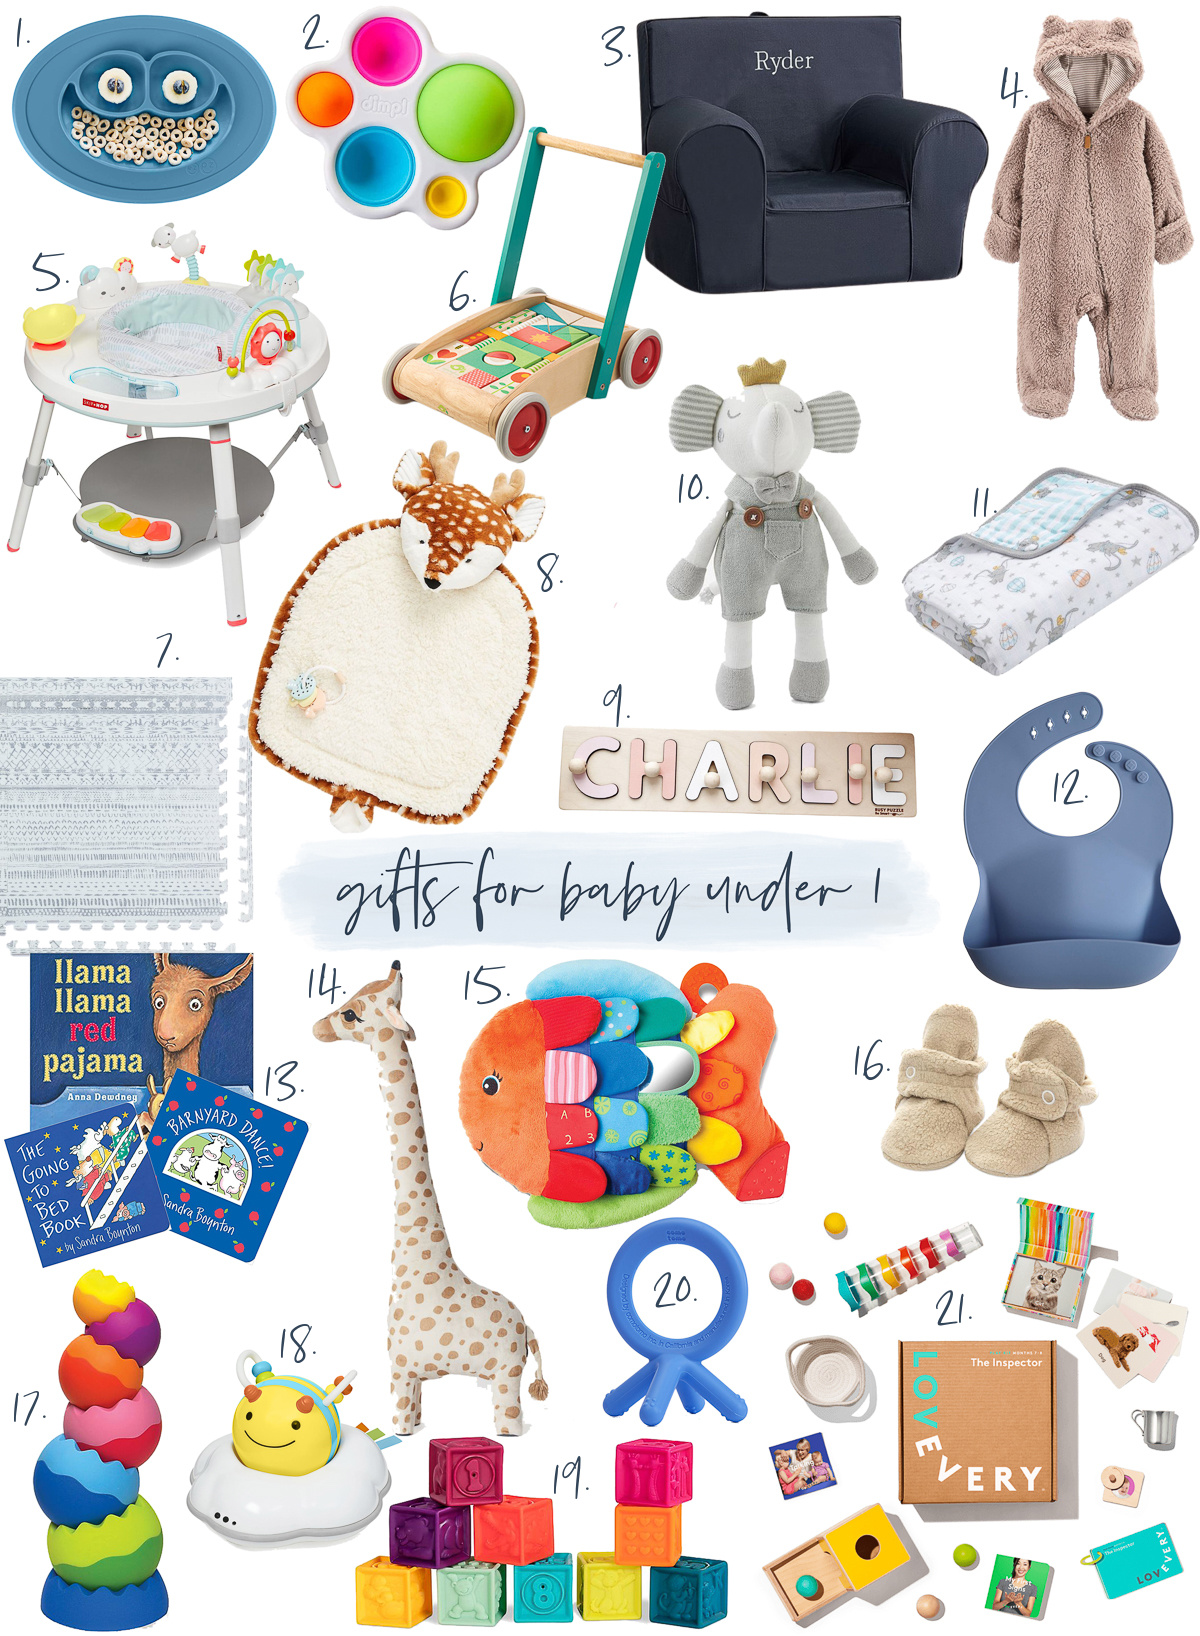 gift guide for babies under one year old